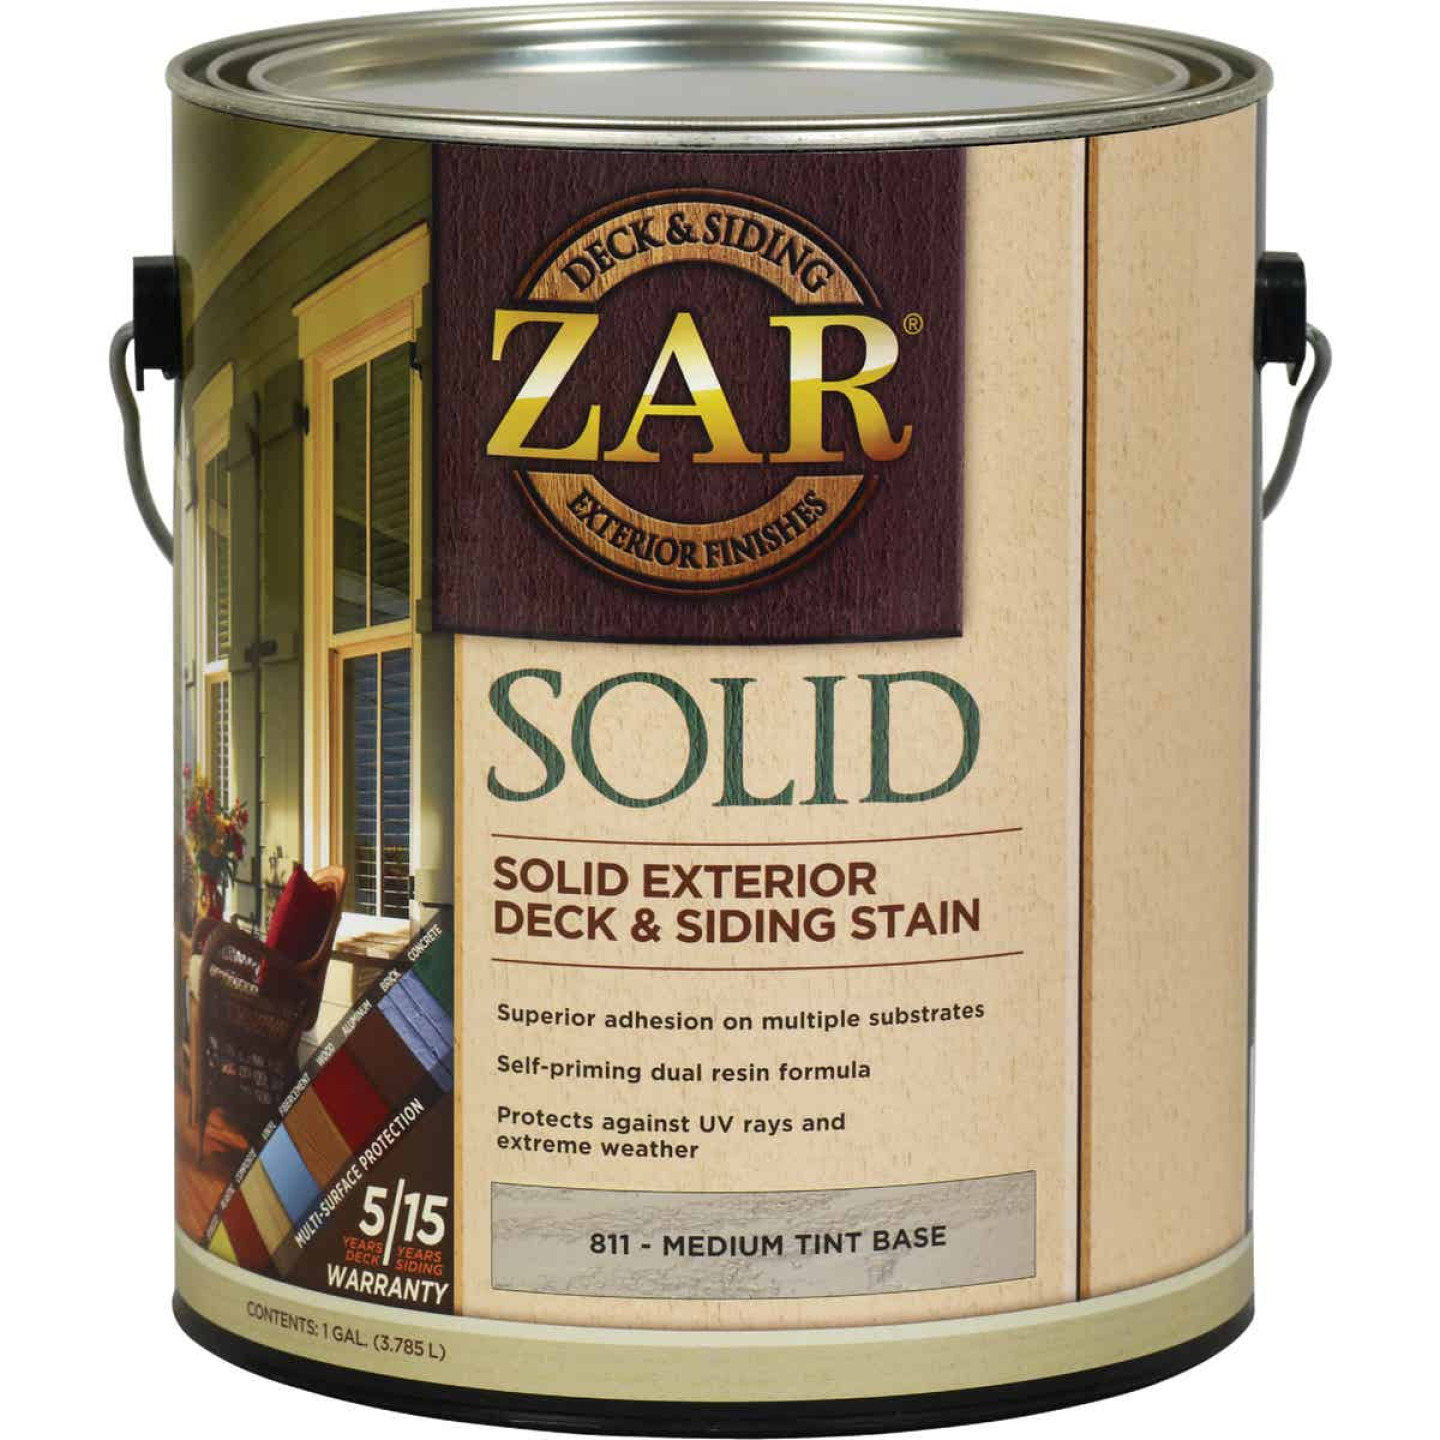 ZAR Solid Deck & Siding Stain, Medium Tint Base, 1 Gal. Image 1